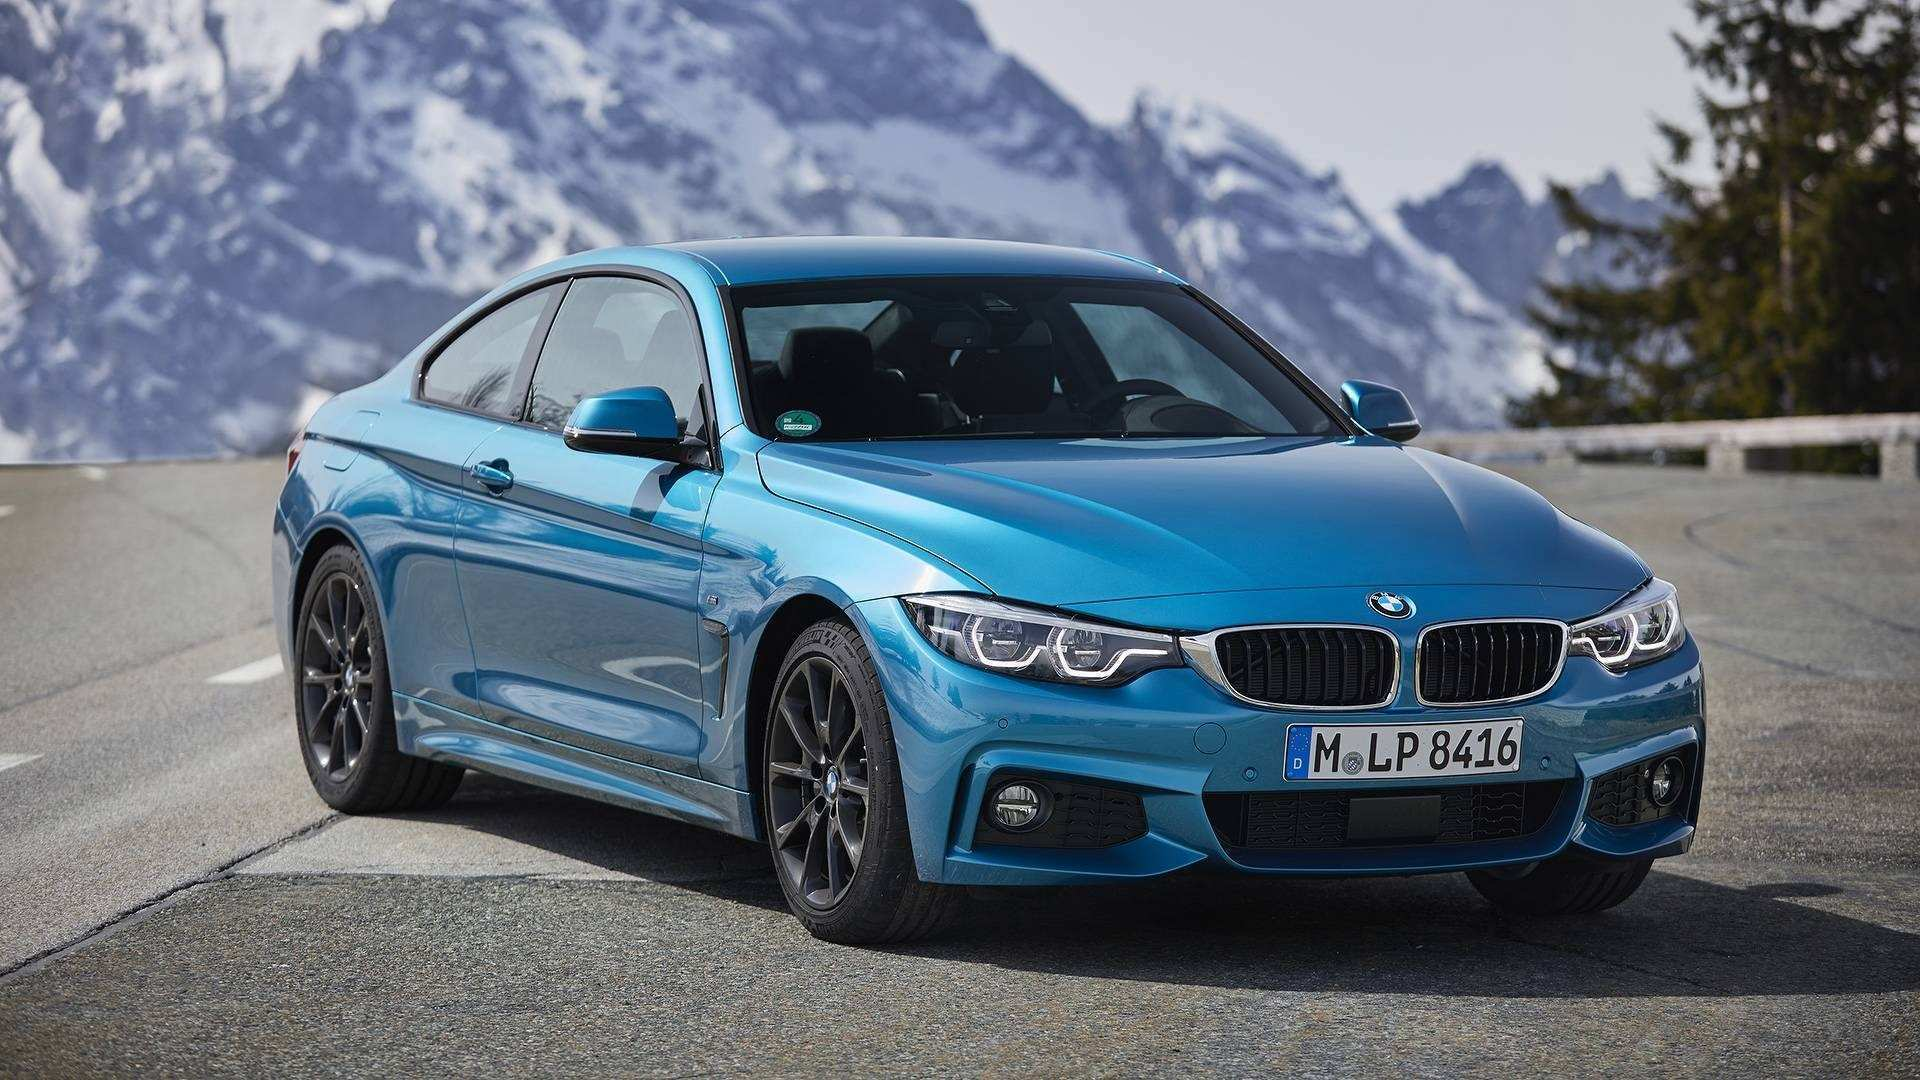 42 Gallery of Upcoming Bmw 2019 Concept Redesign And Review Redesign with Upcoming Bmw 2019 Concept Redesign And Review